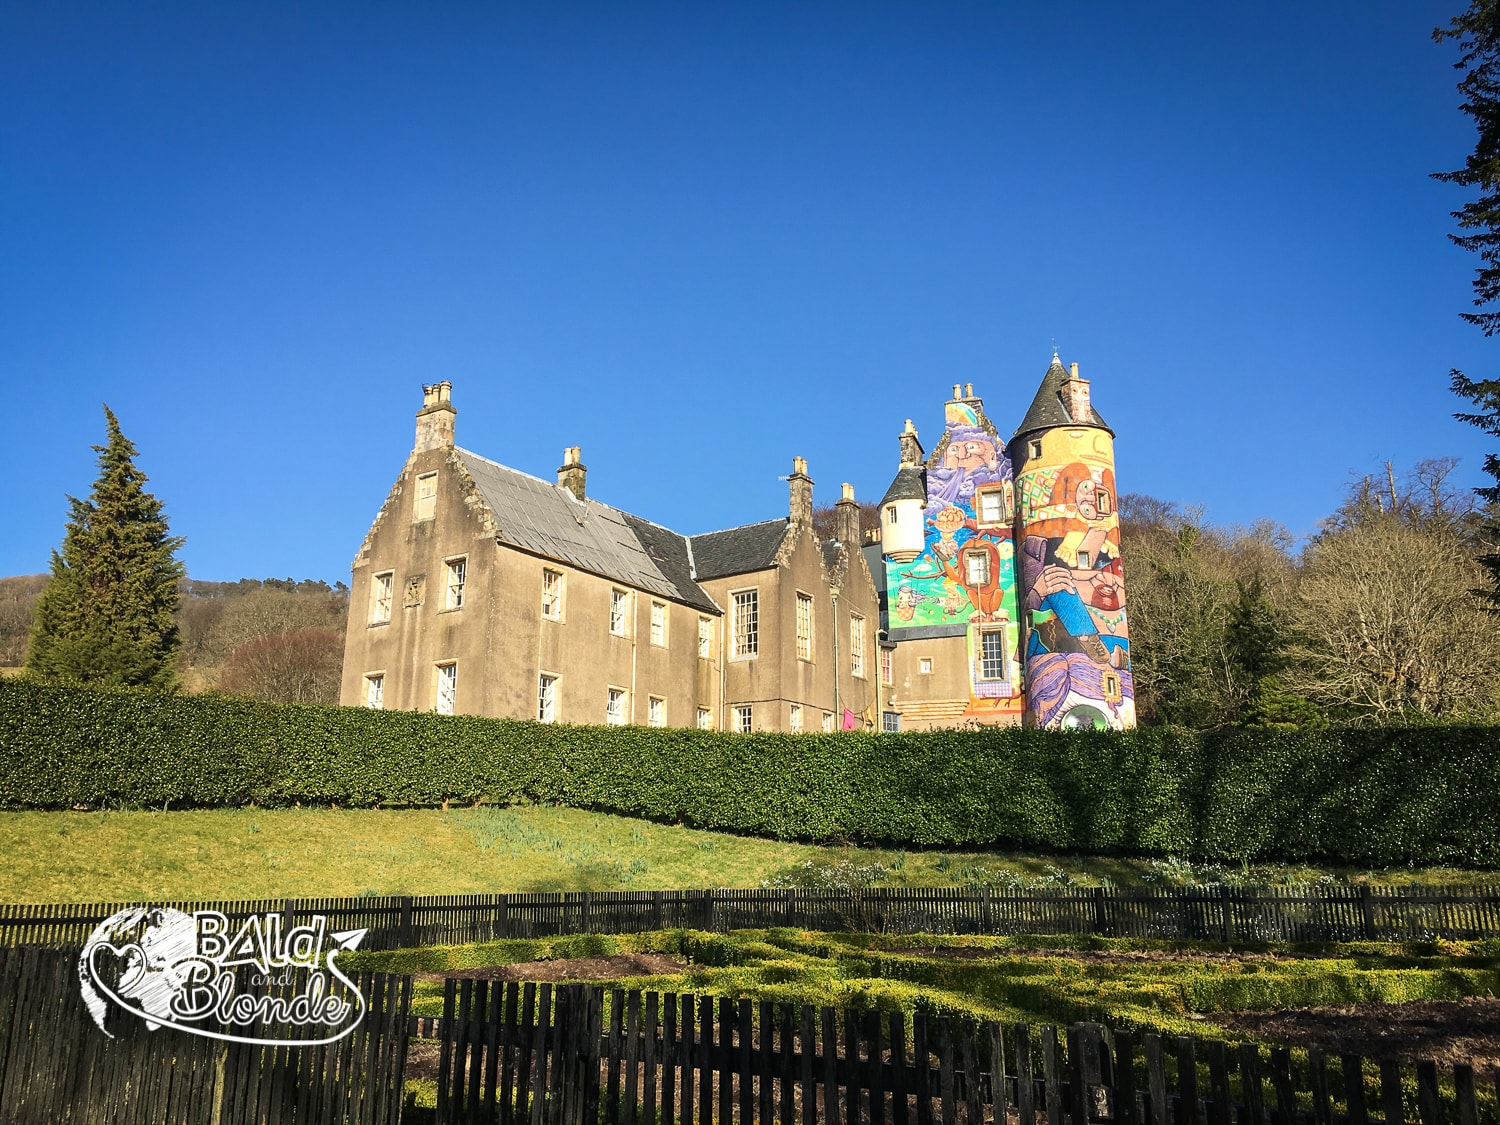 Kelburn Castle - Bald and Blonde